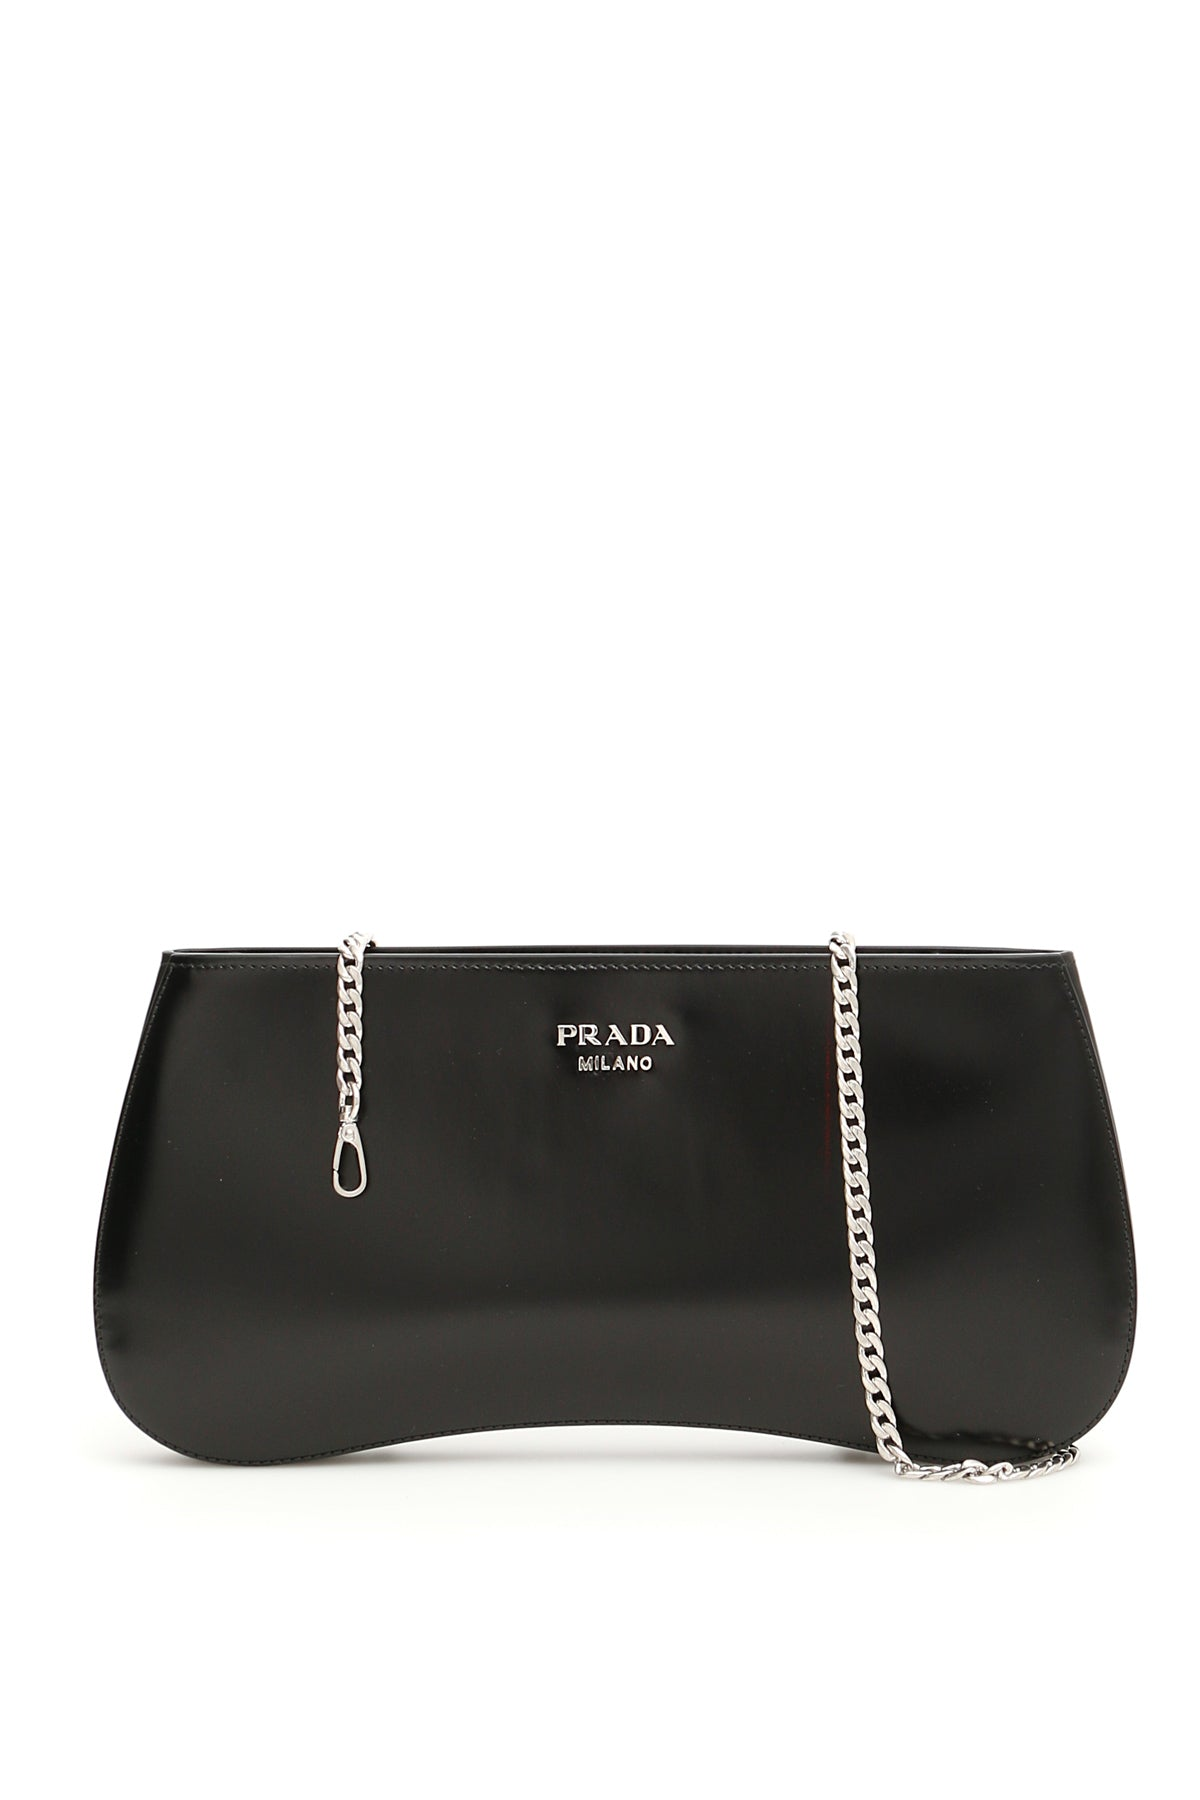 7f608ca764ca Prada Brushed Chain Strap Clutch Bag In Black | ModeSens